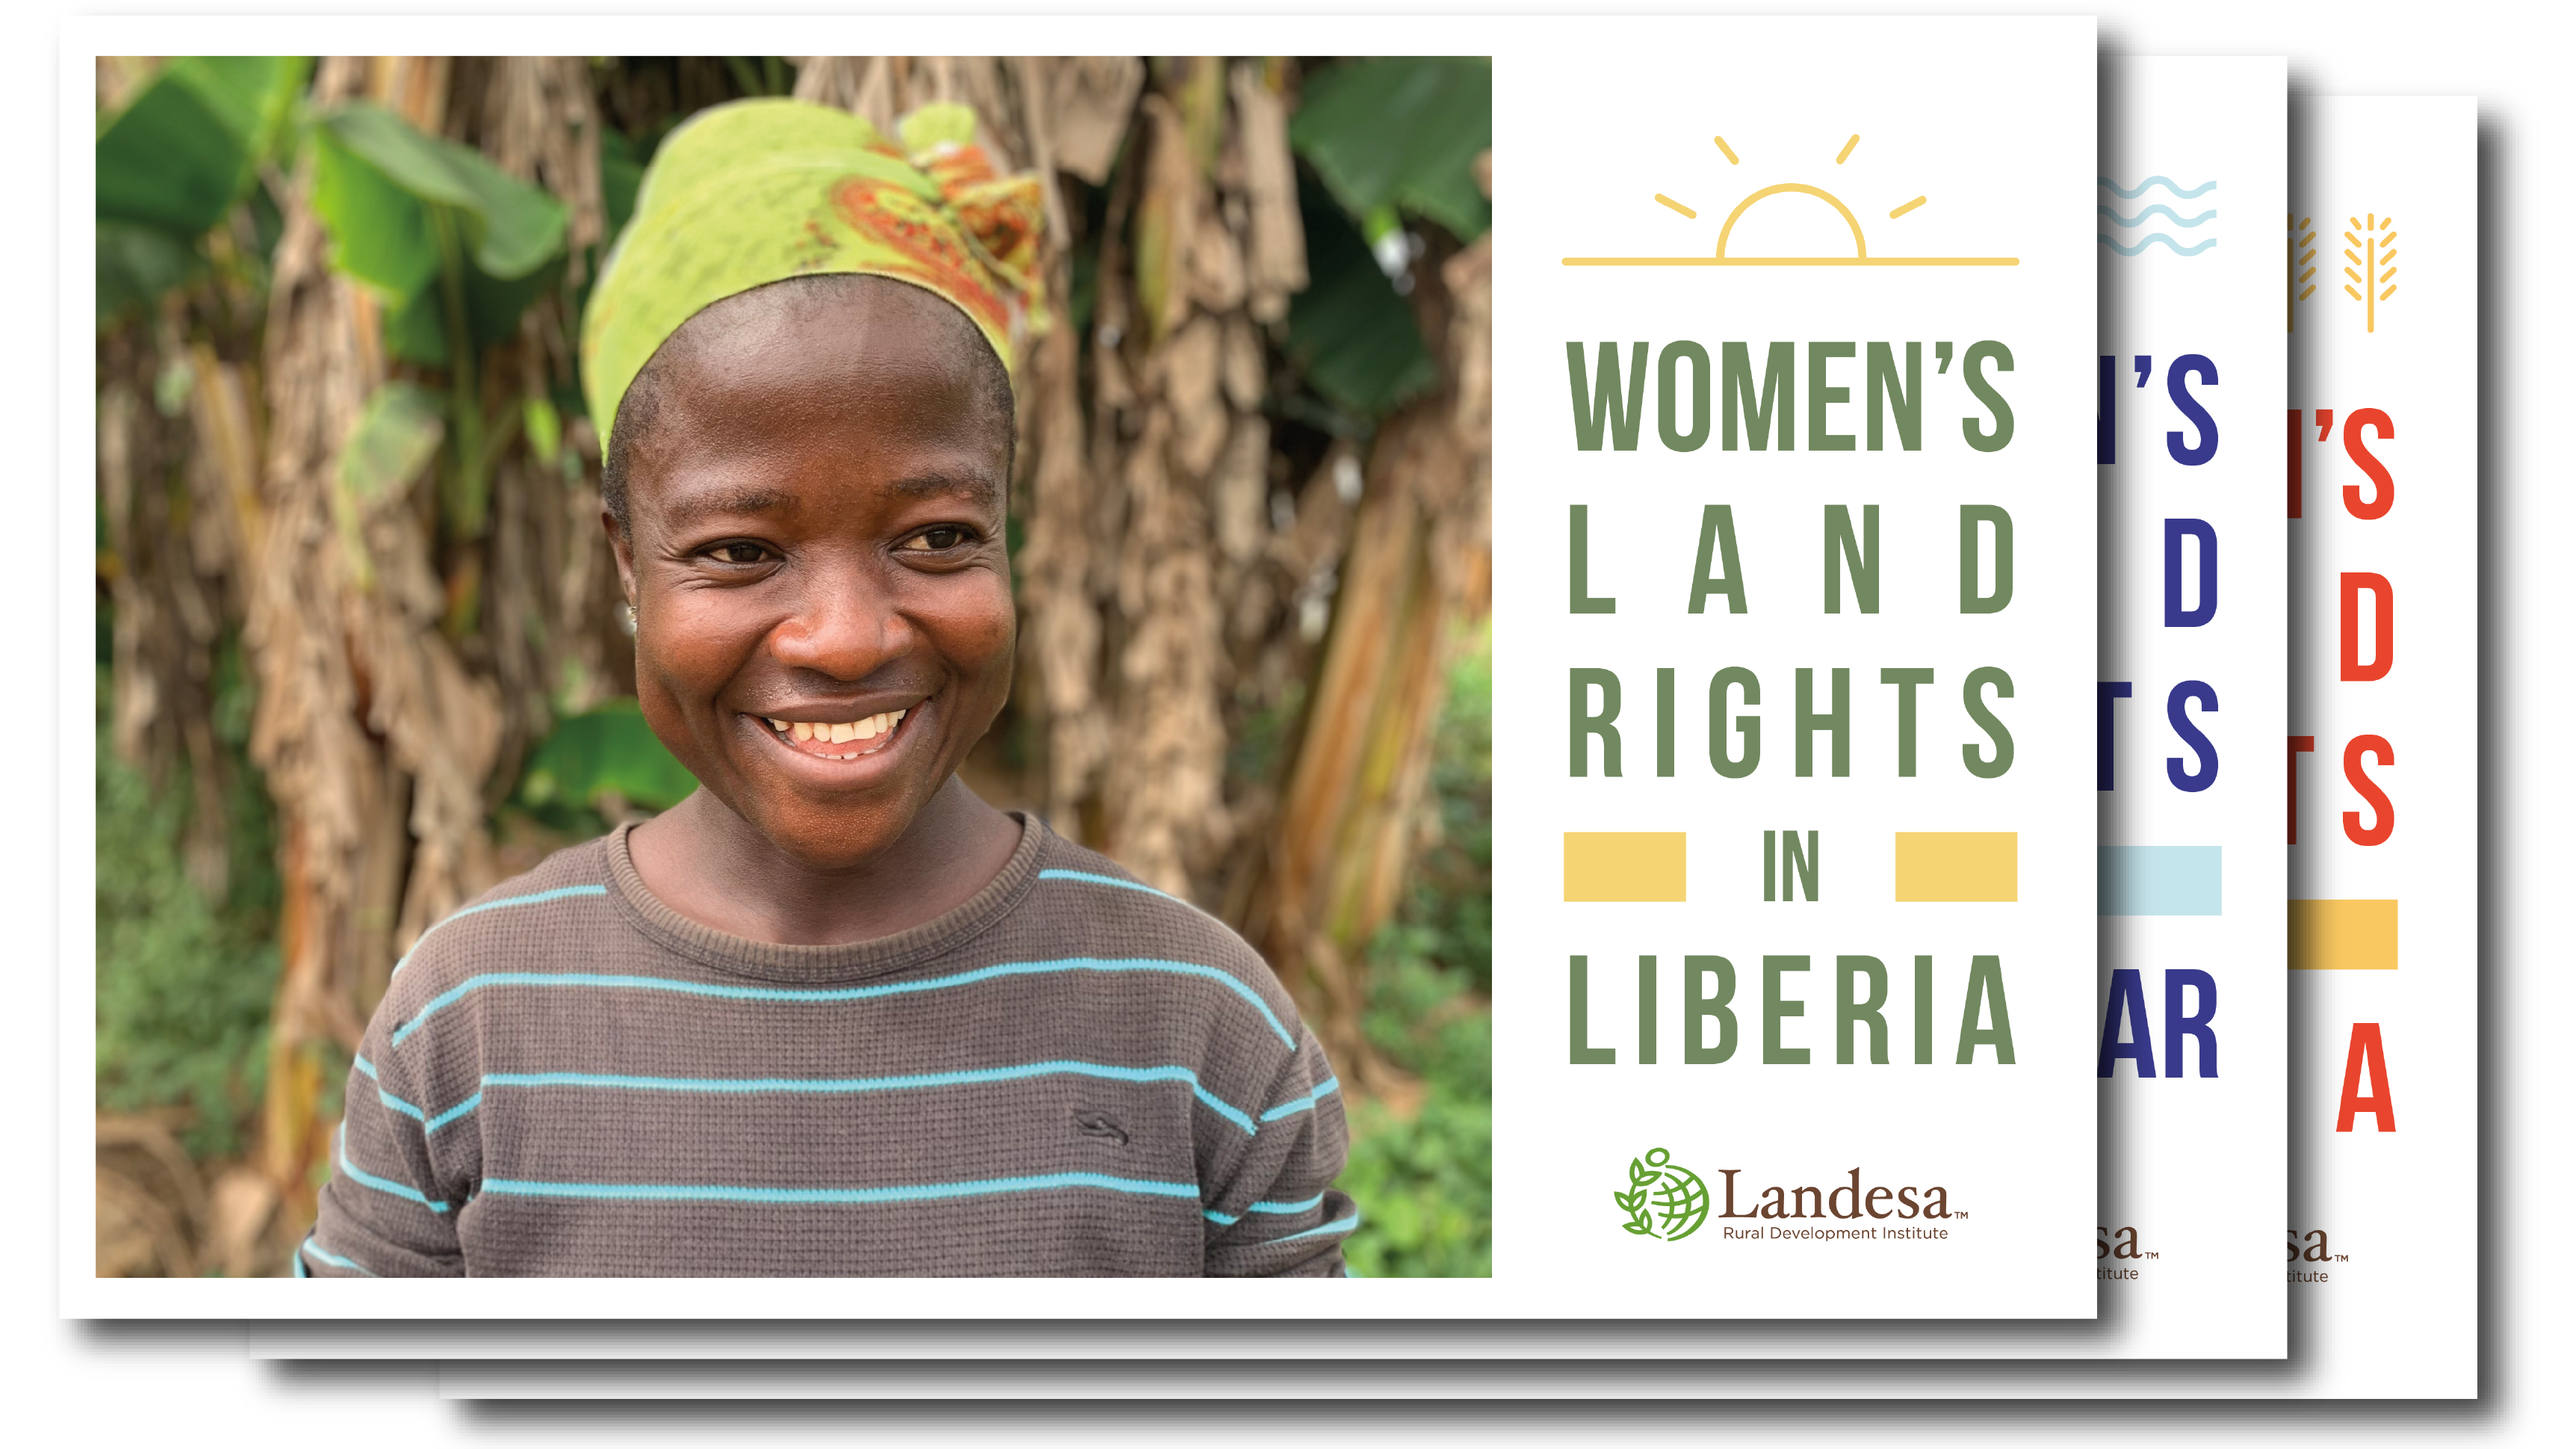 Postcards promoting women's land rights